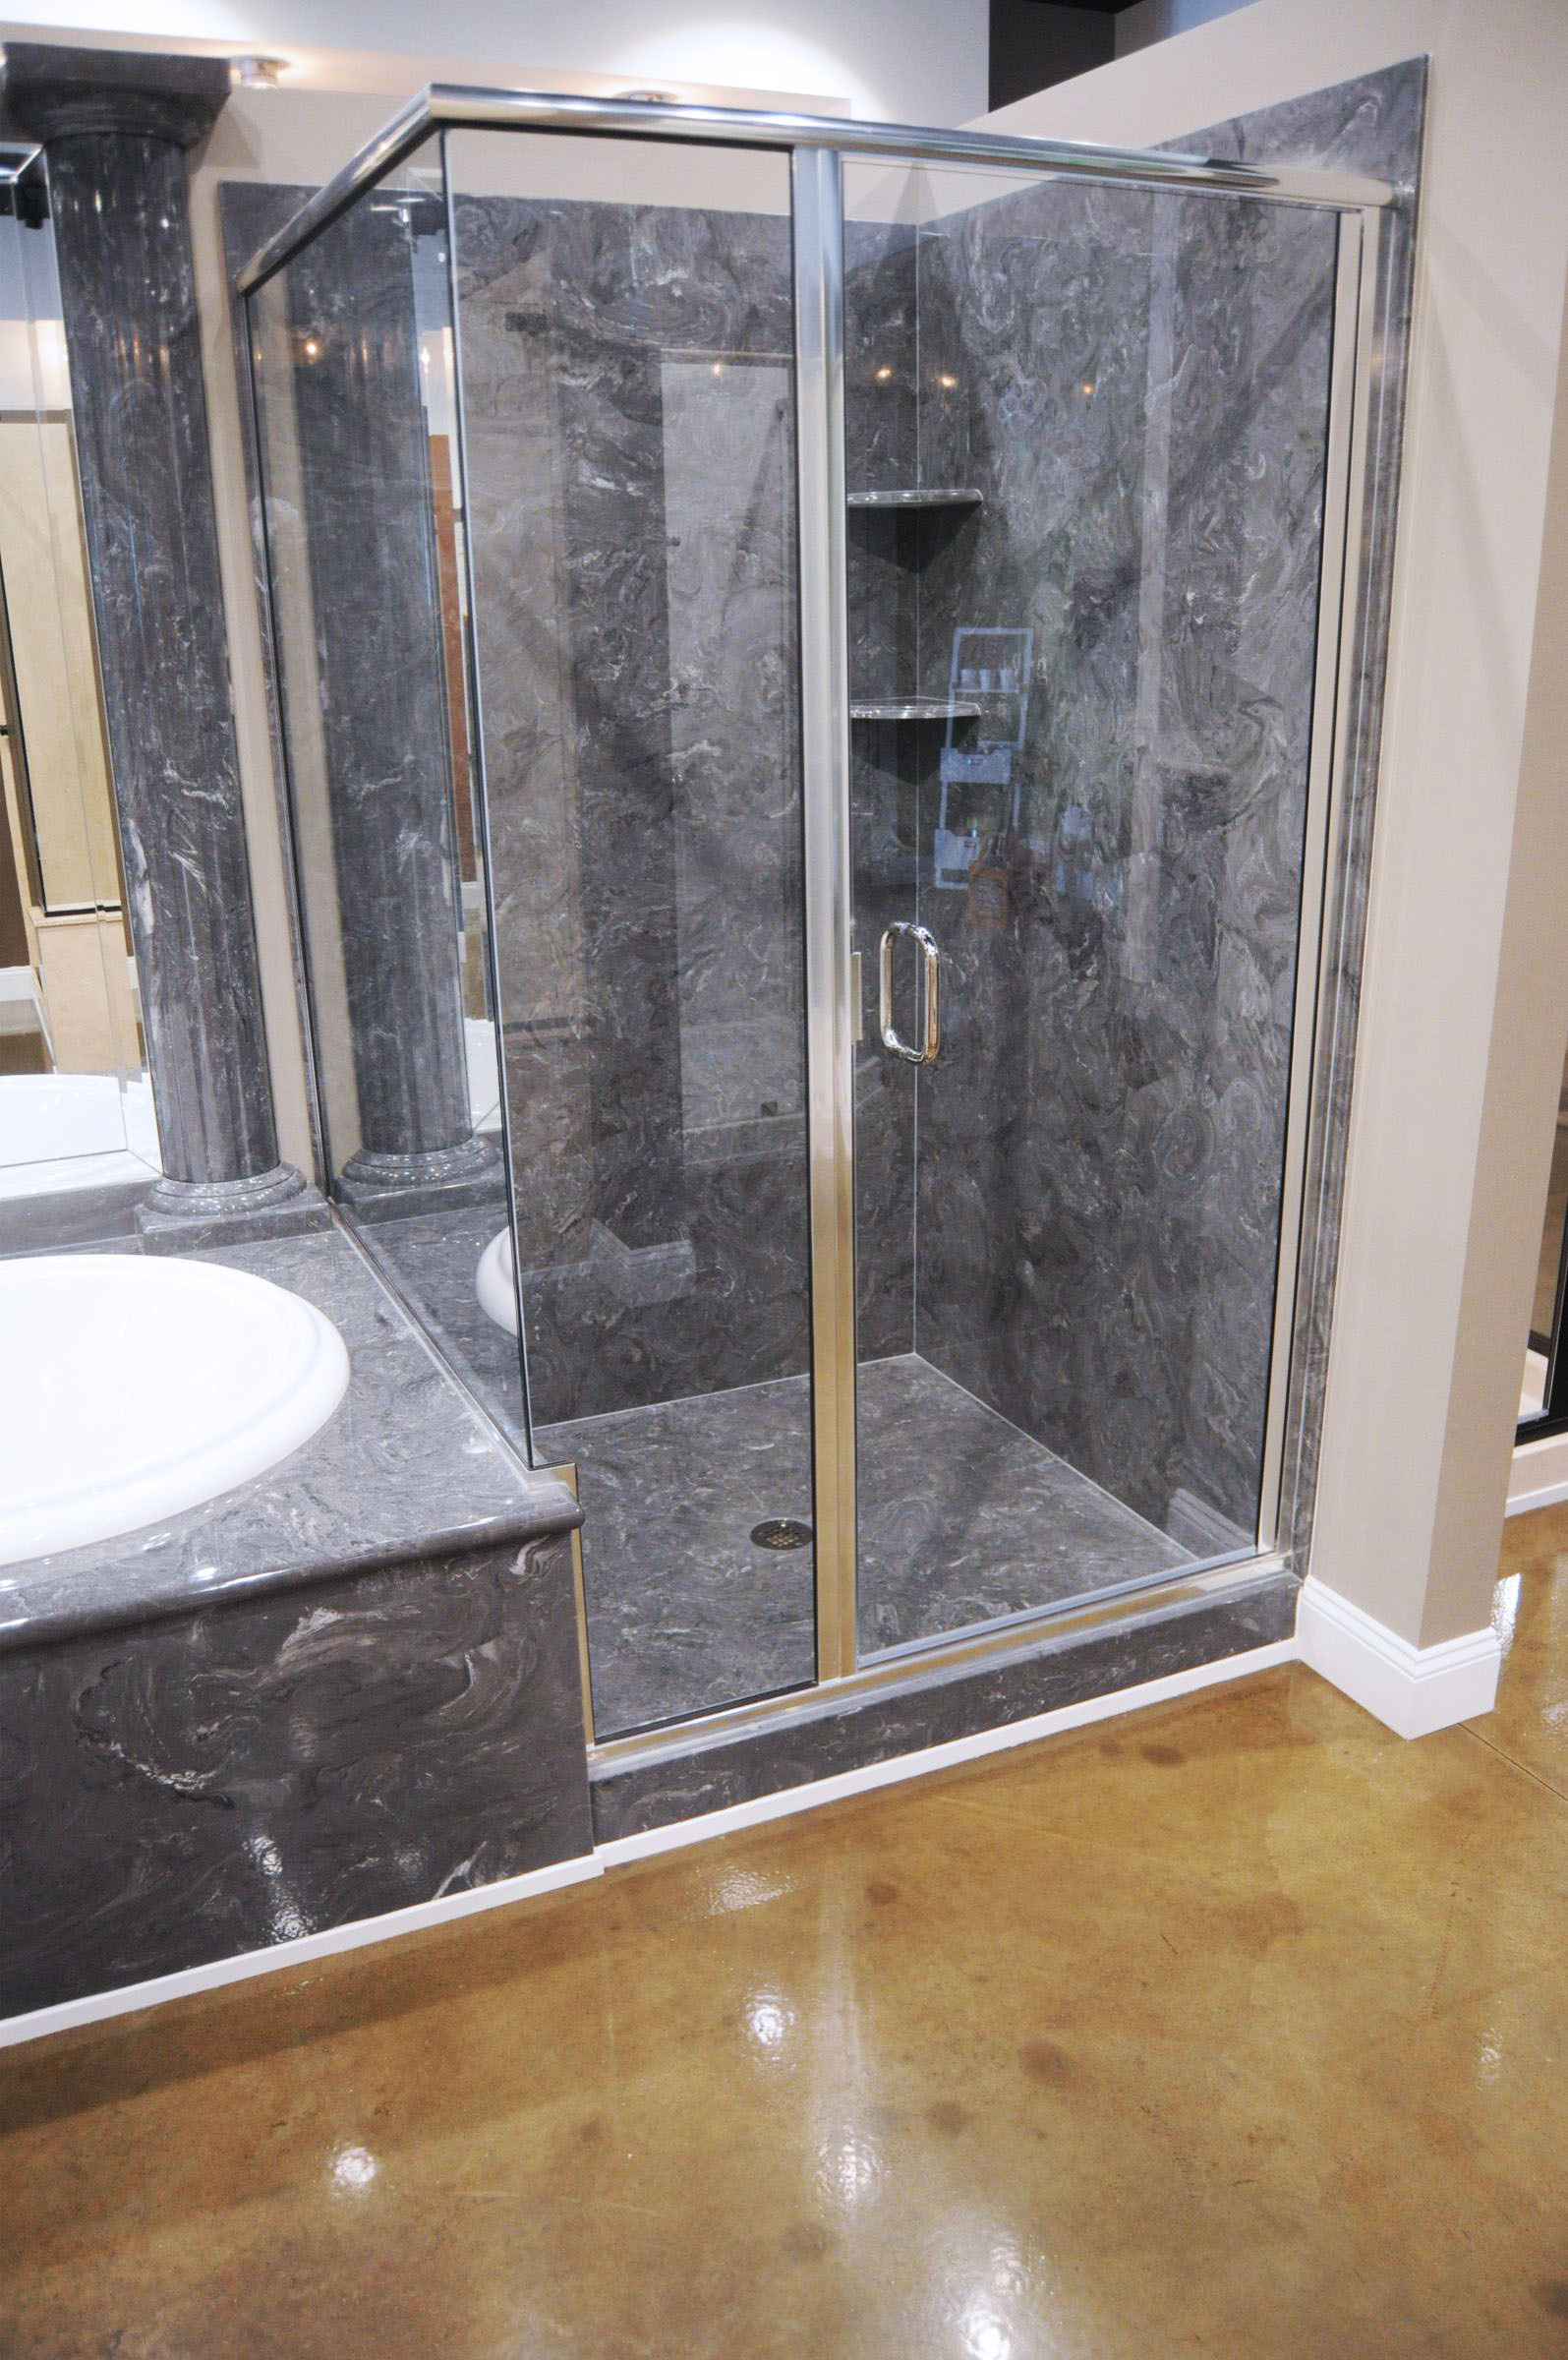 Waterproof Bathroom Wall Panels Bq Laminate Diy Shower Kits